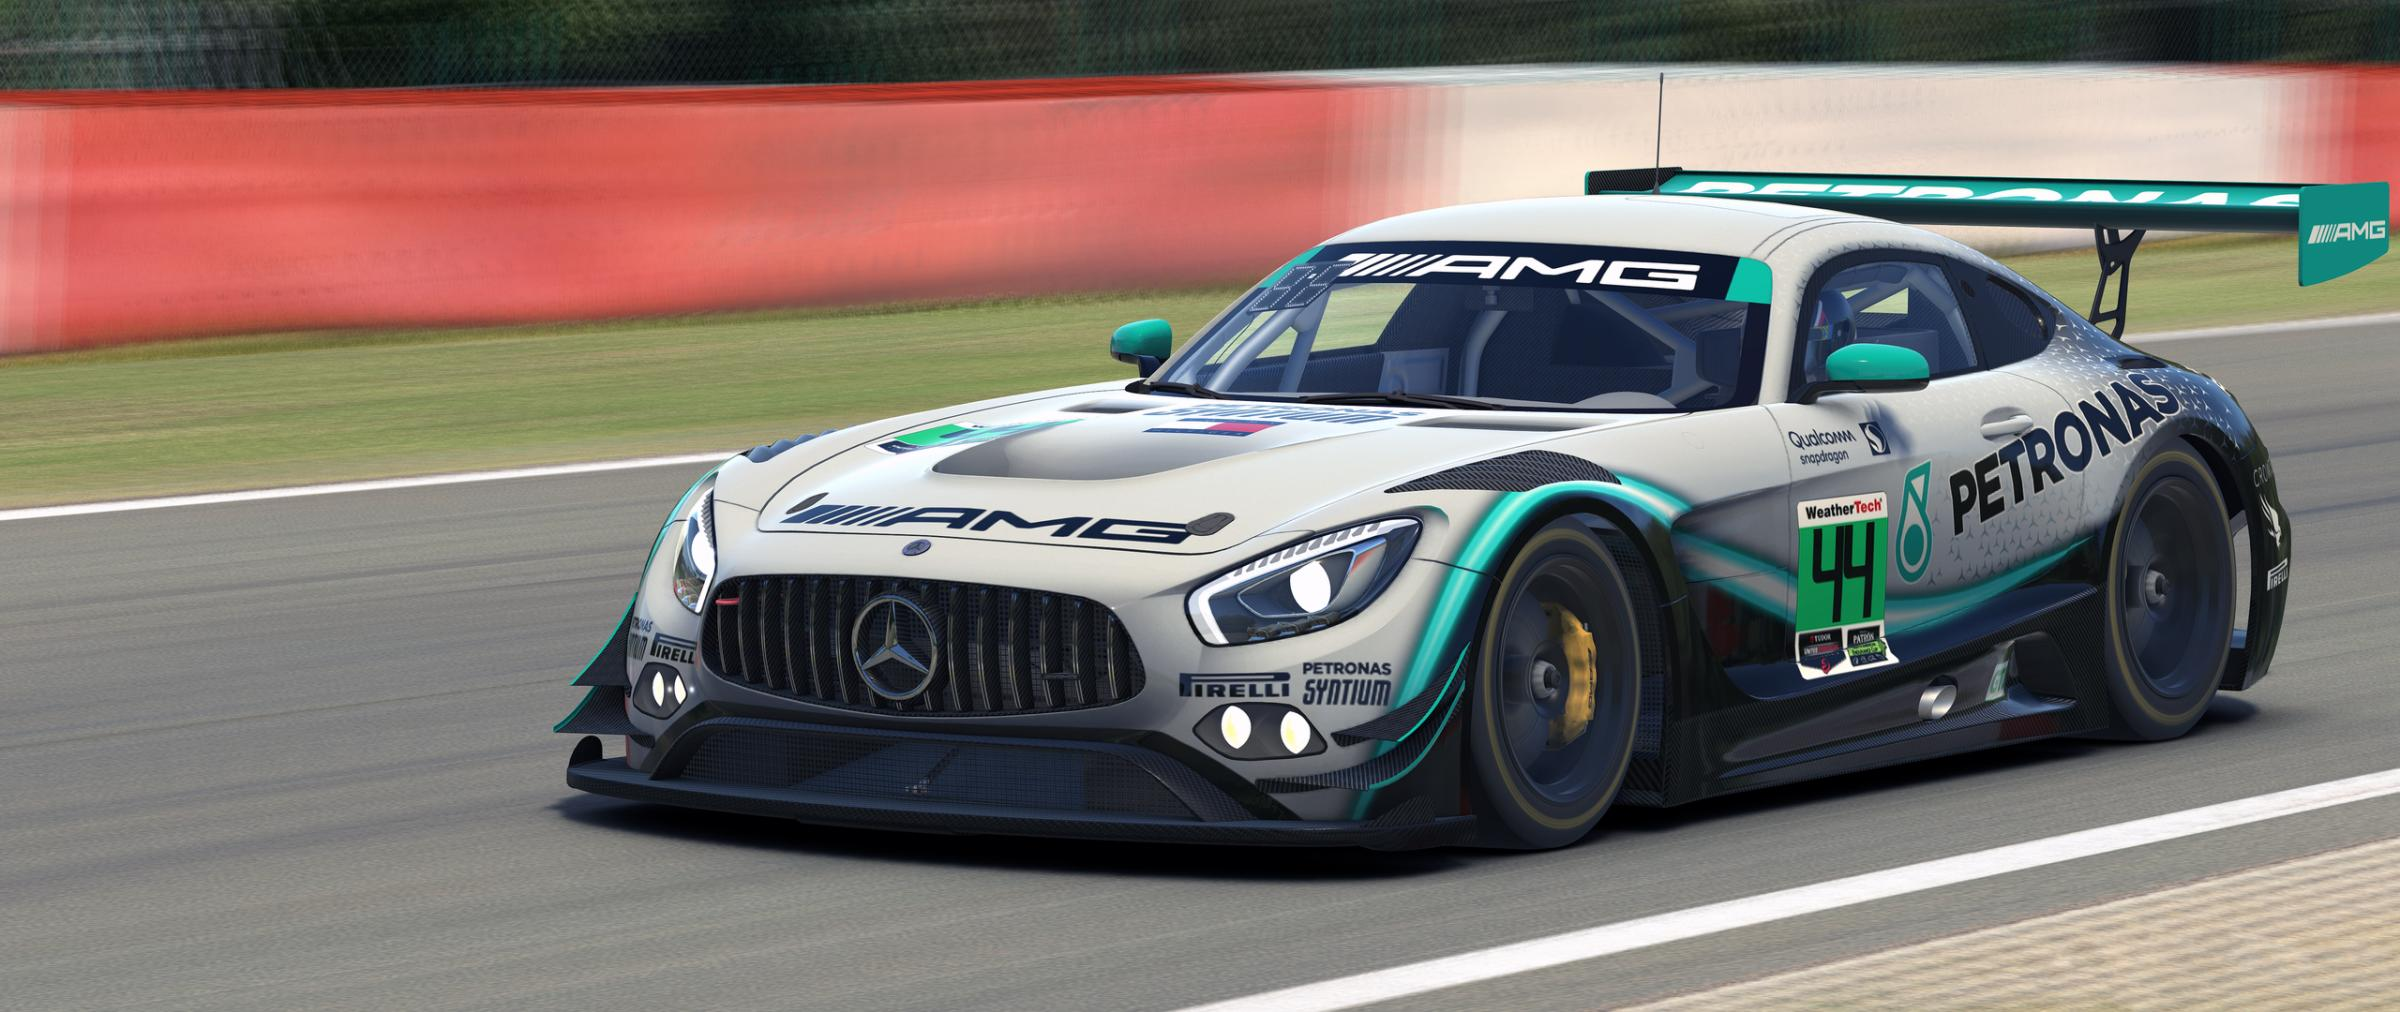 Preview of AMG Petronas Motorsport  - Petronas by Timothy Collier